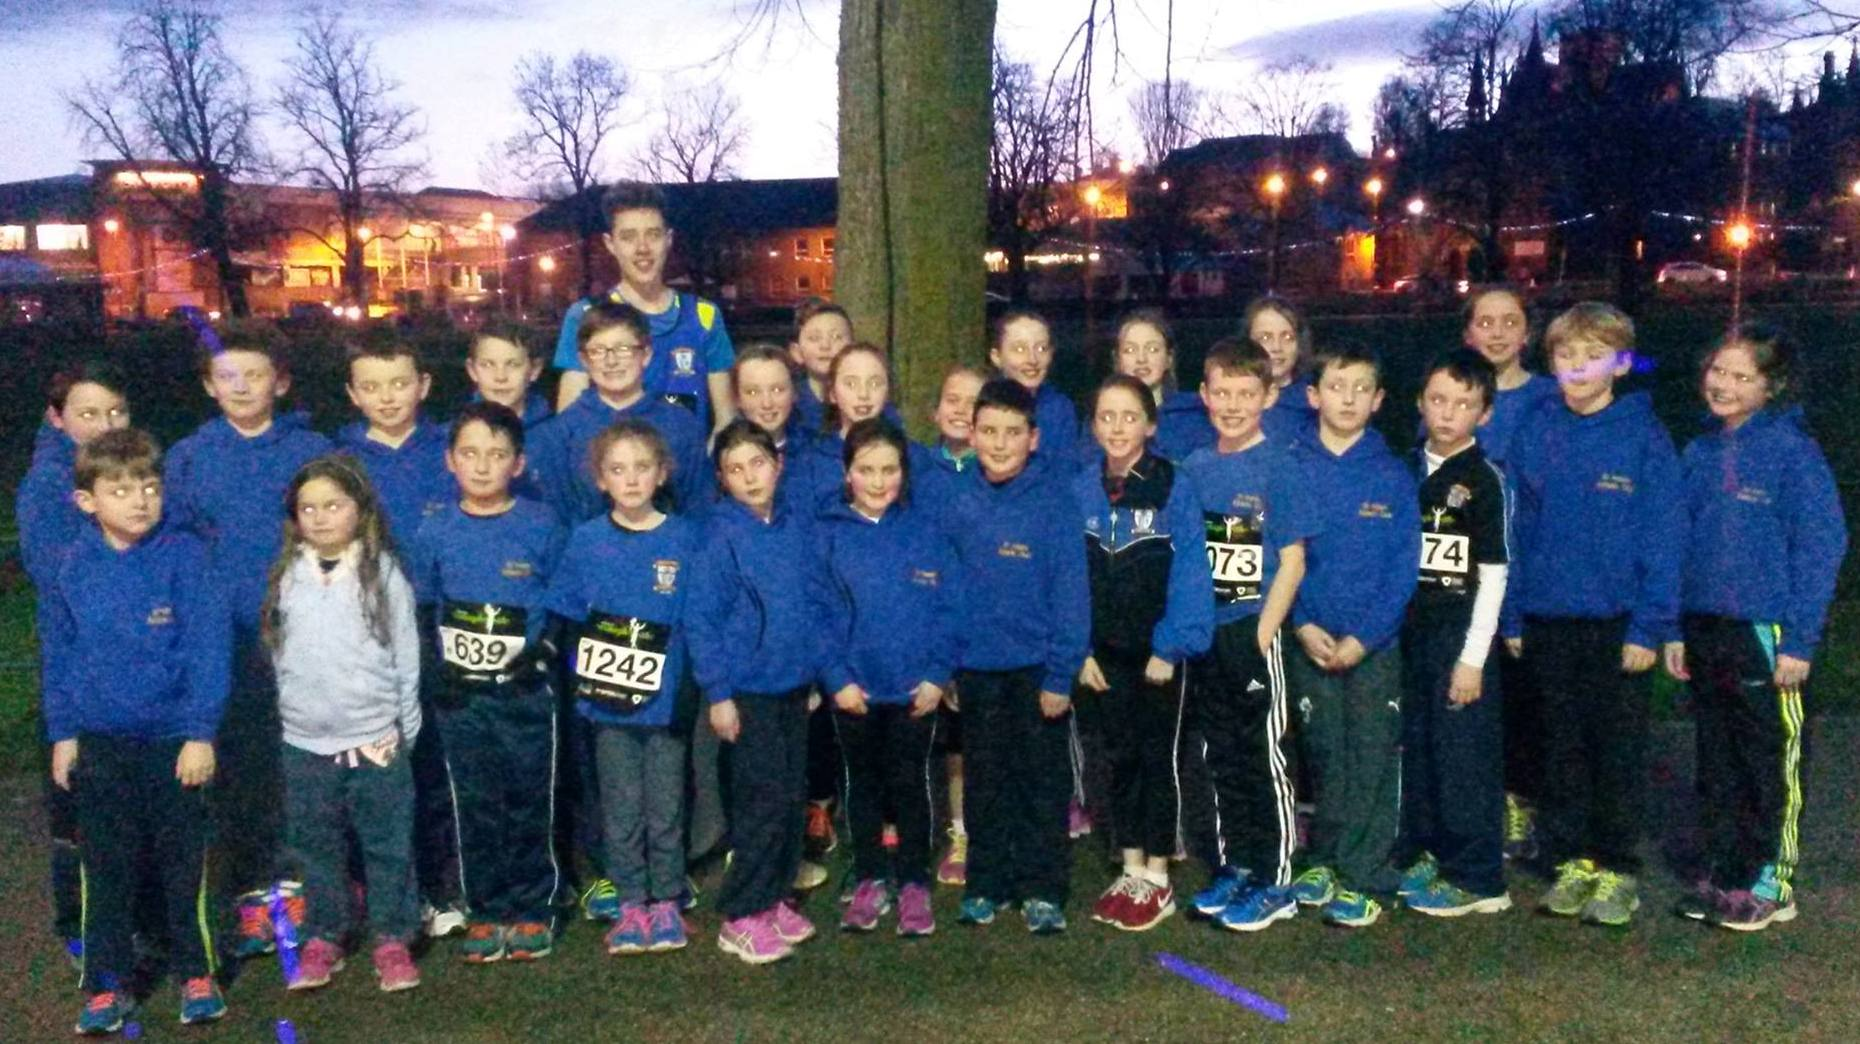 St Peter's AC athletes at Armagh International Road Races (Armagh, February 2016)